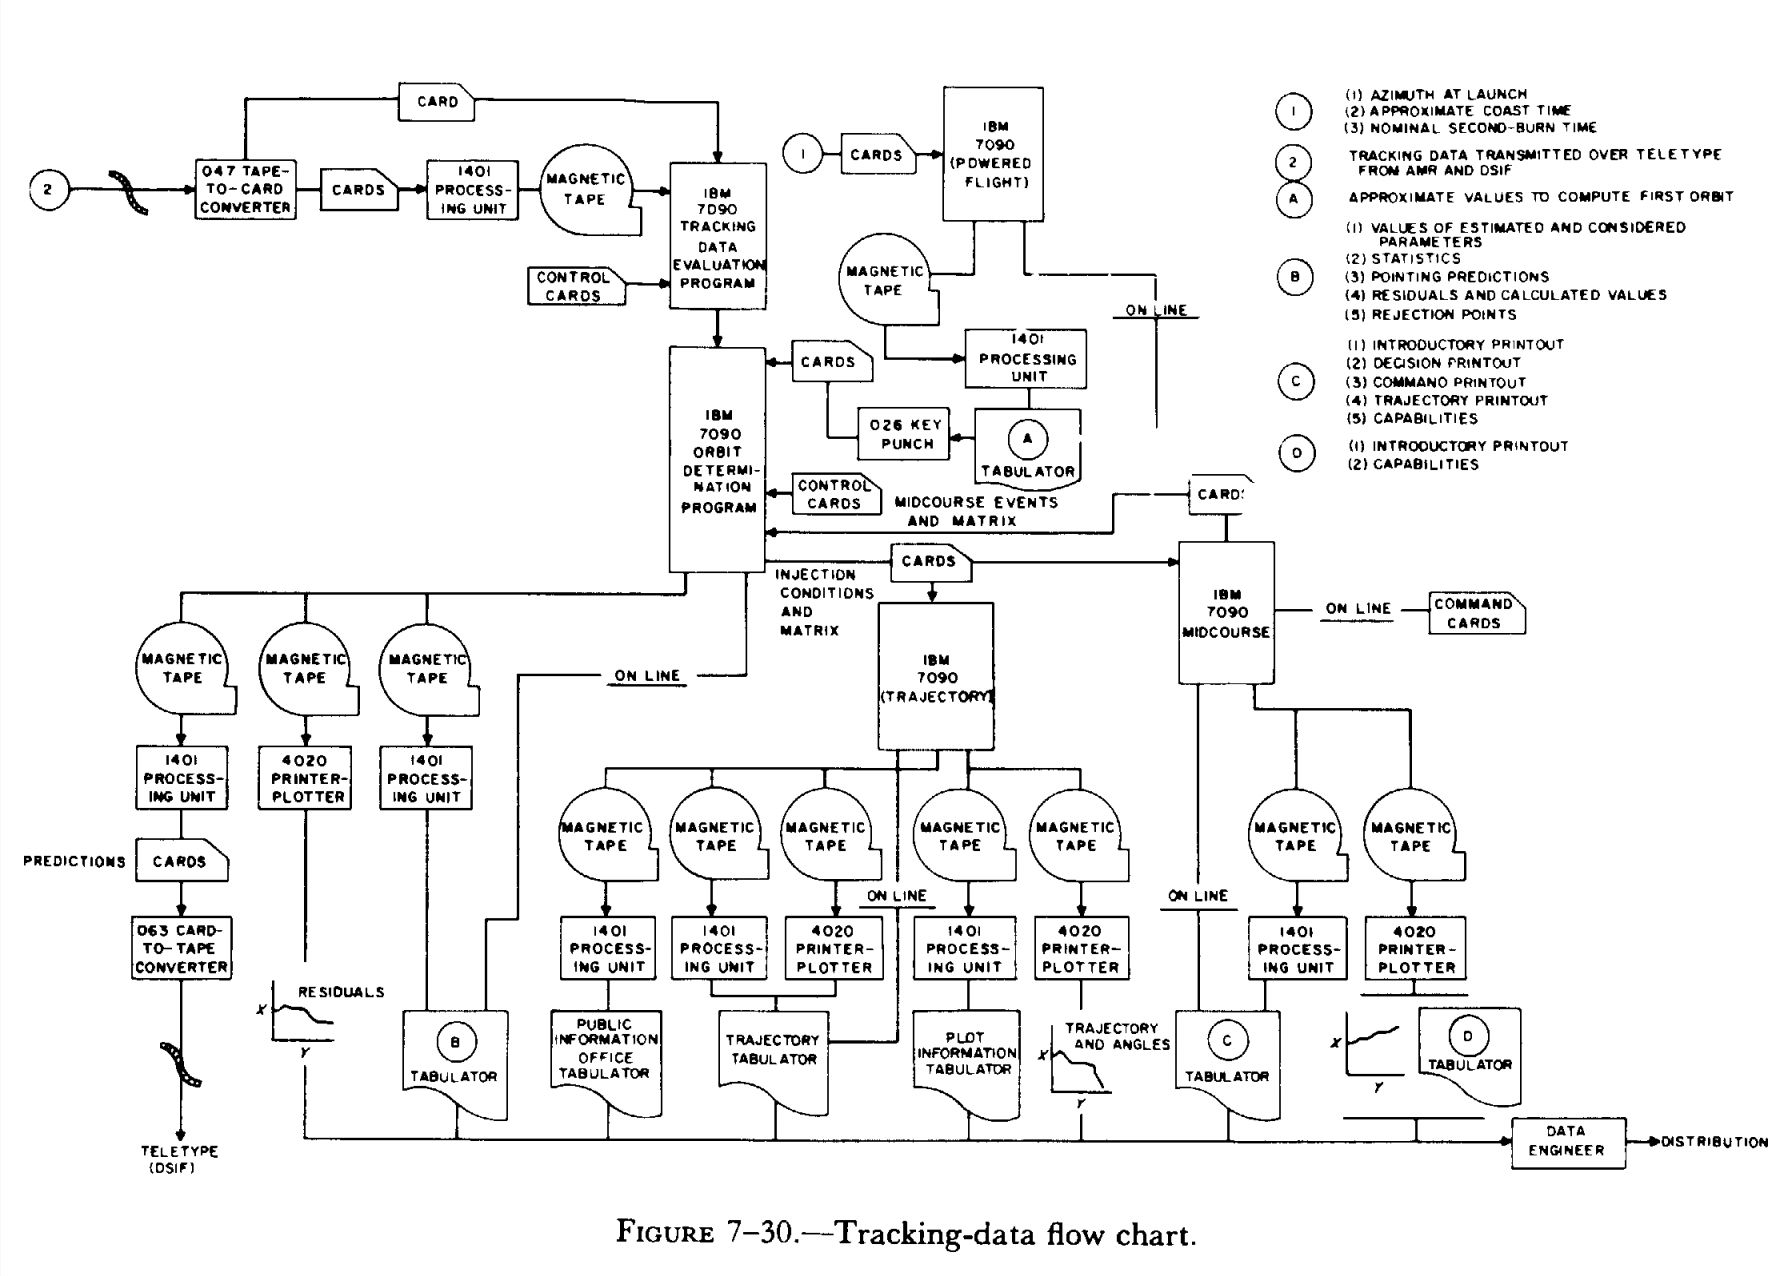 Flow Chart Excel Template: Tracking-data flow chart.jpg - Wikimedia Commons,Chart